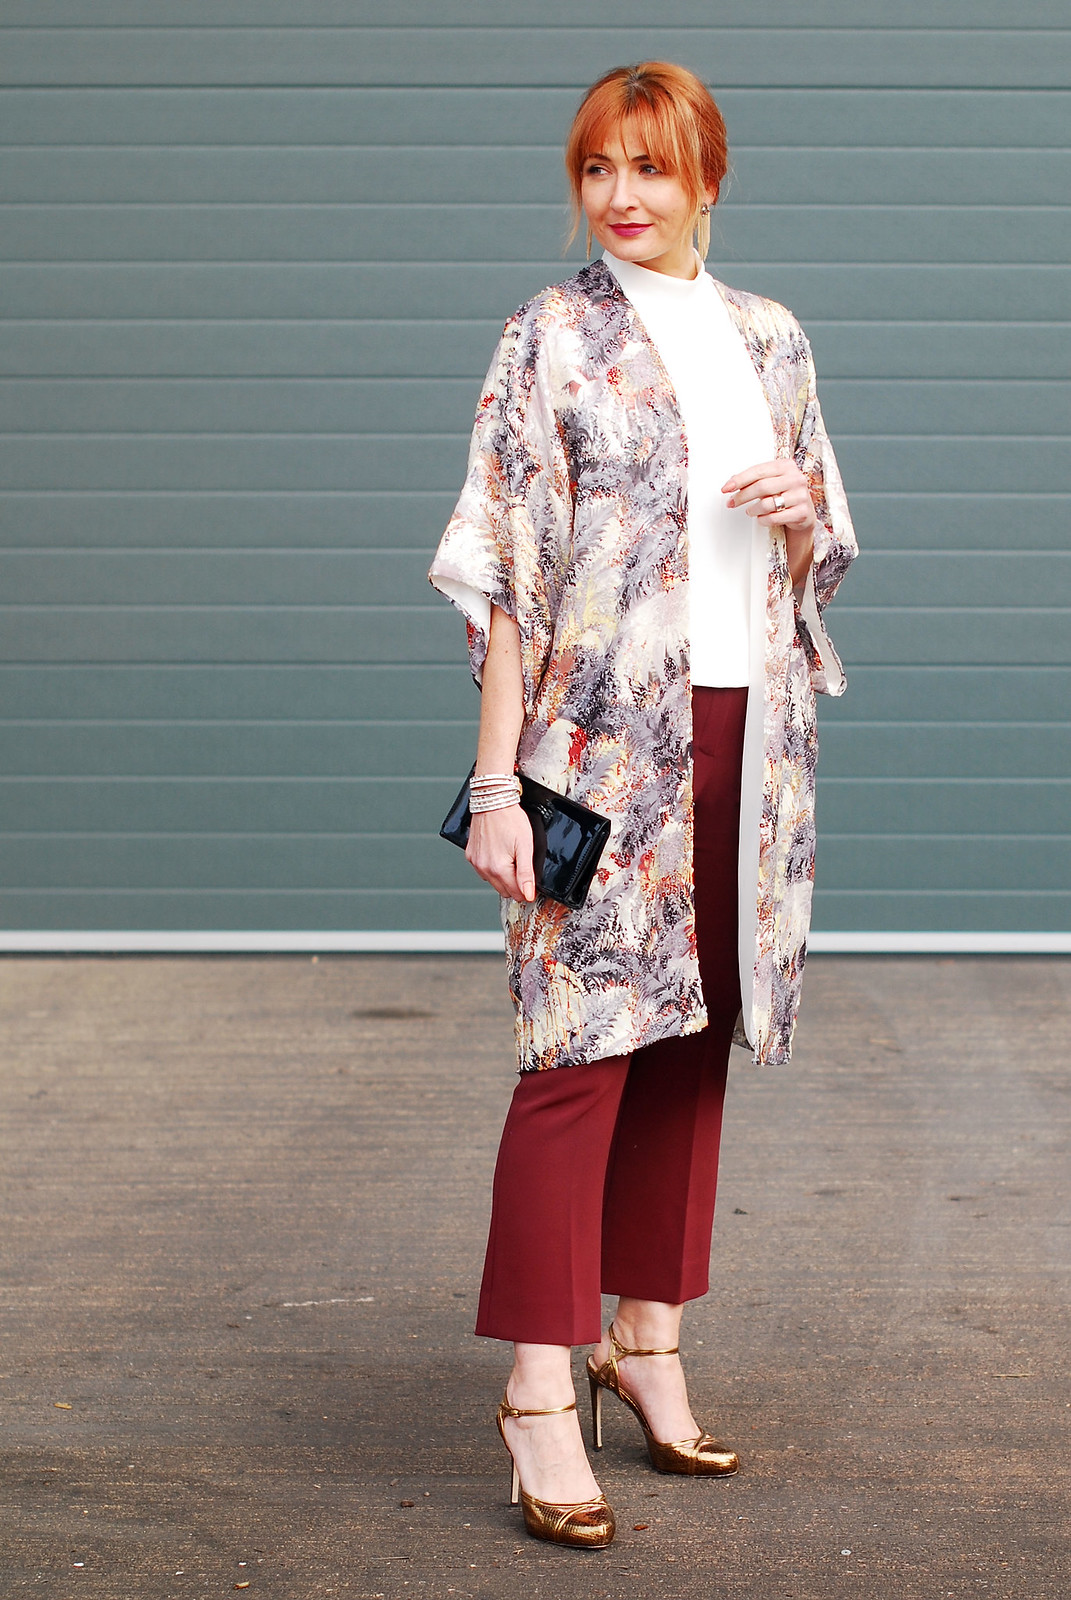 Christmas party outfit  sequinned palm print kimono  burgundy cropped flares  high neck white top  bronze, gold high heels | Not Dressed As Lamb, over 40 style